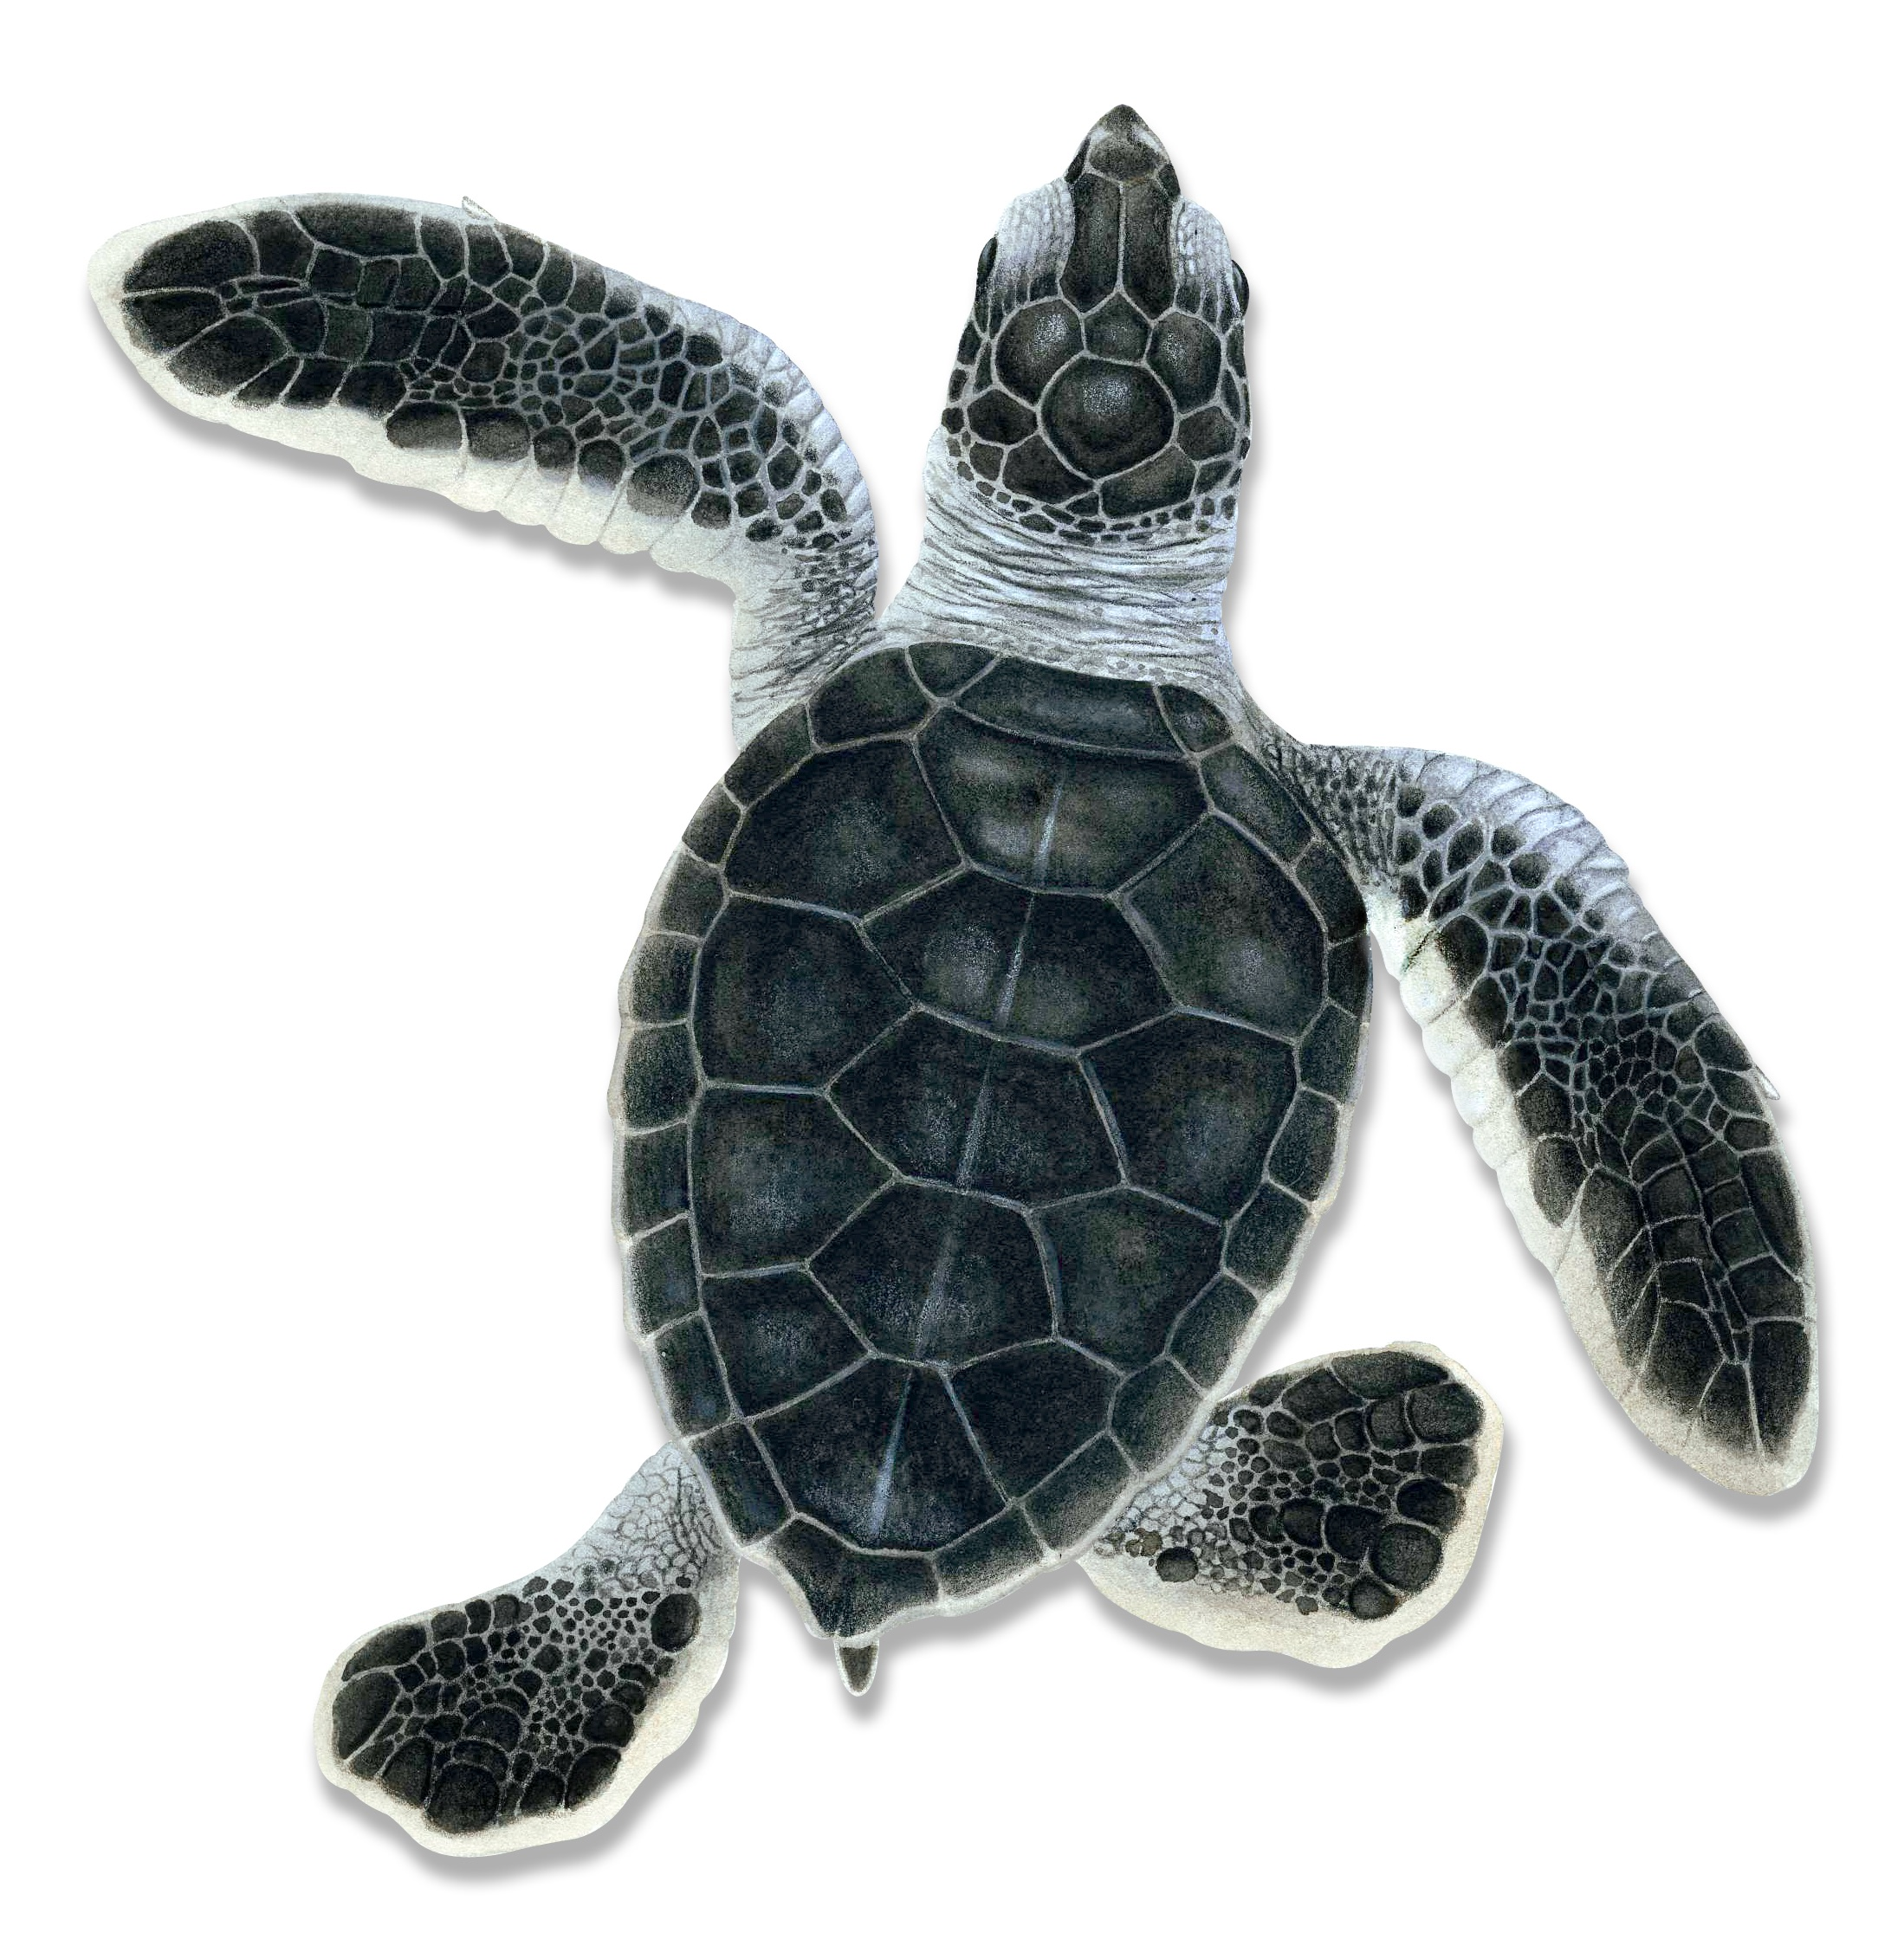 Illustration of a hatchling green turtle. © Dawn Witherington